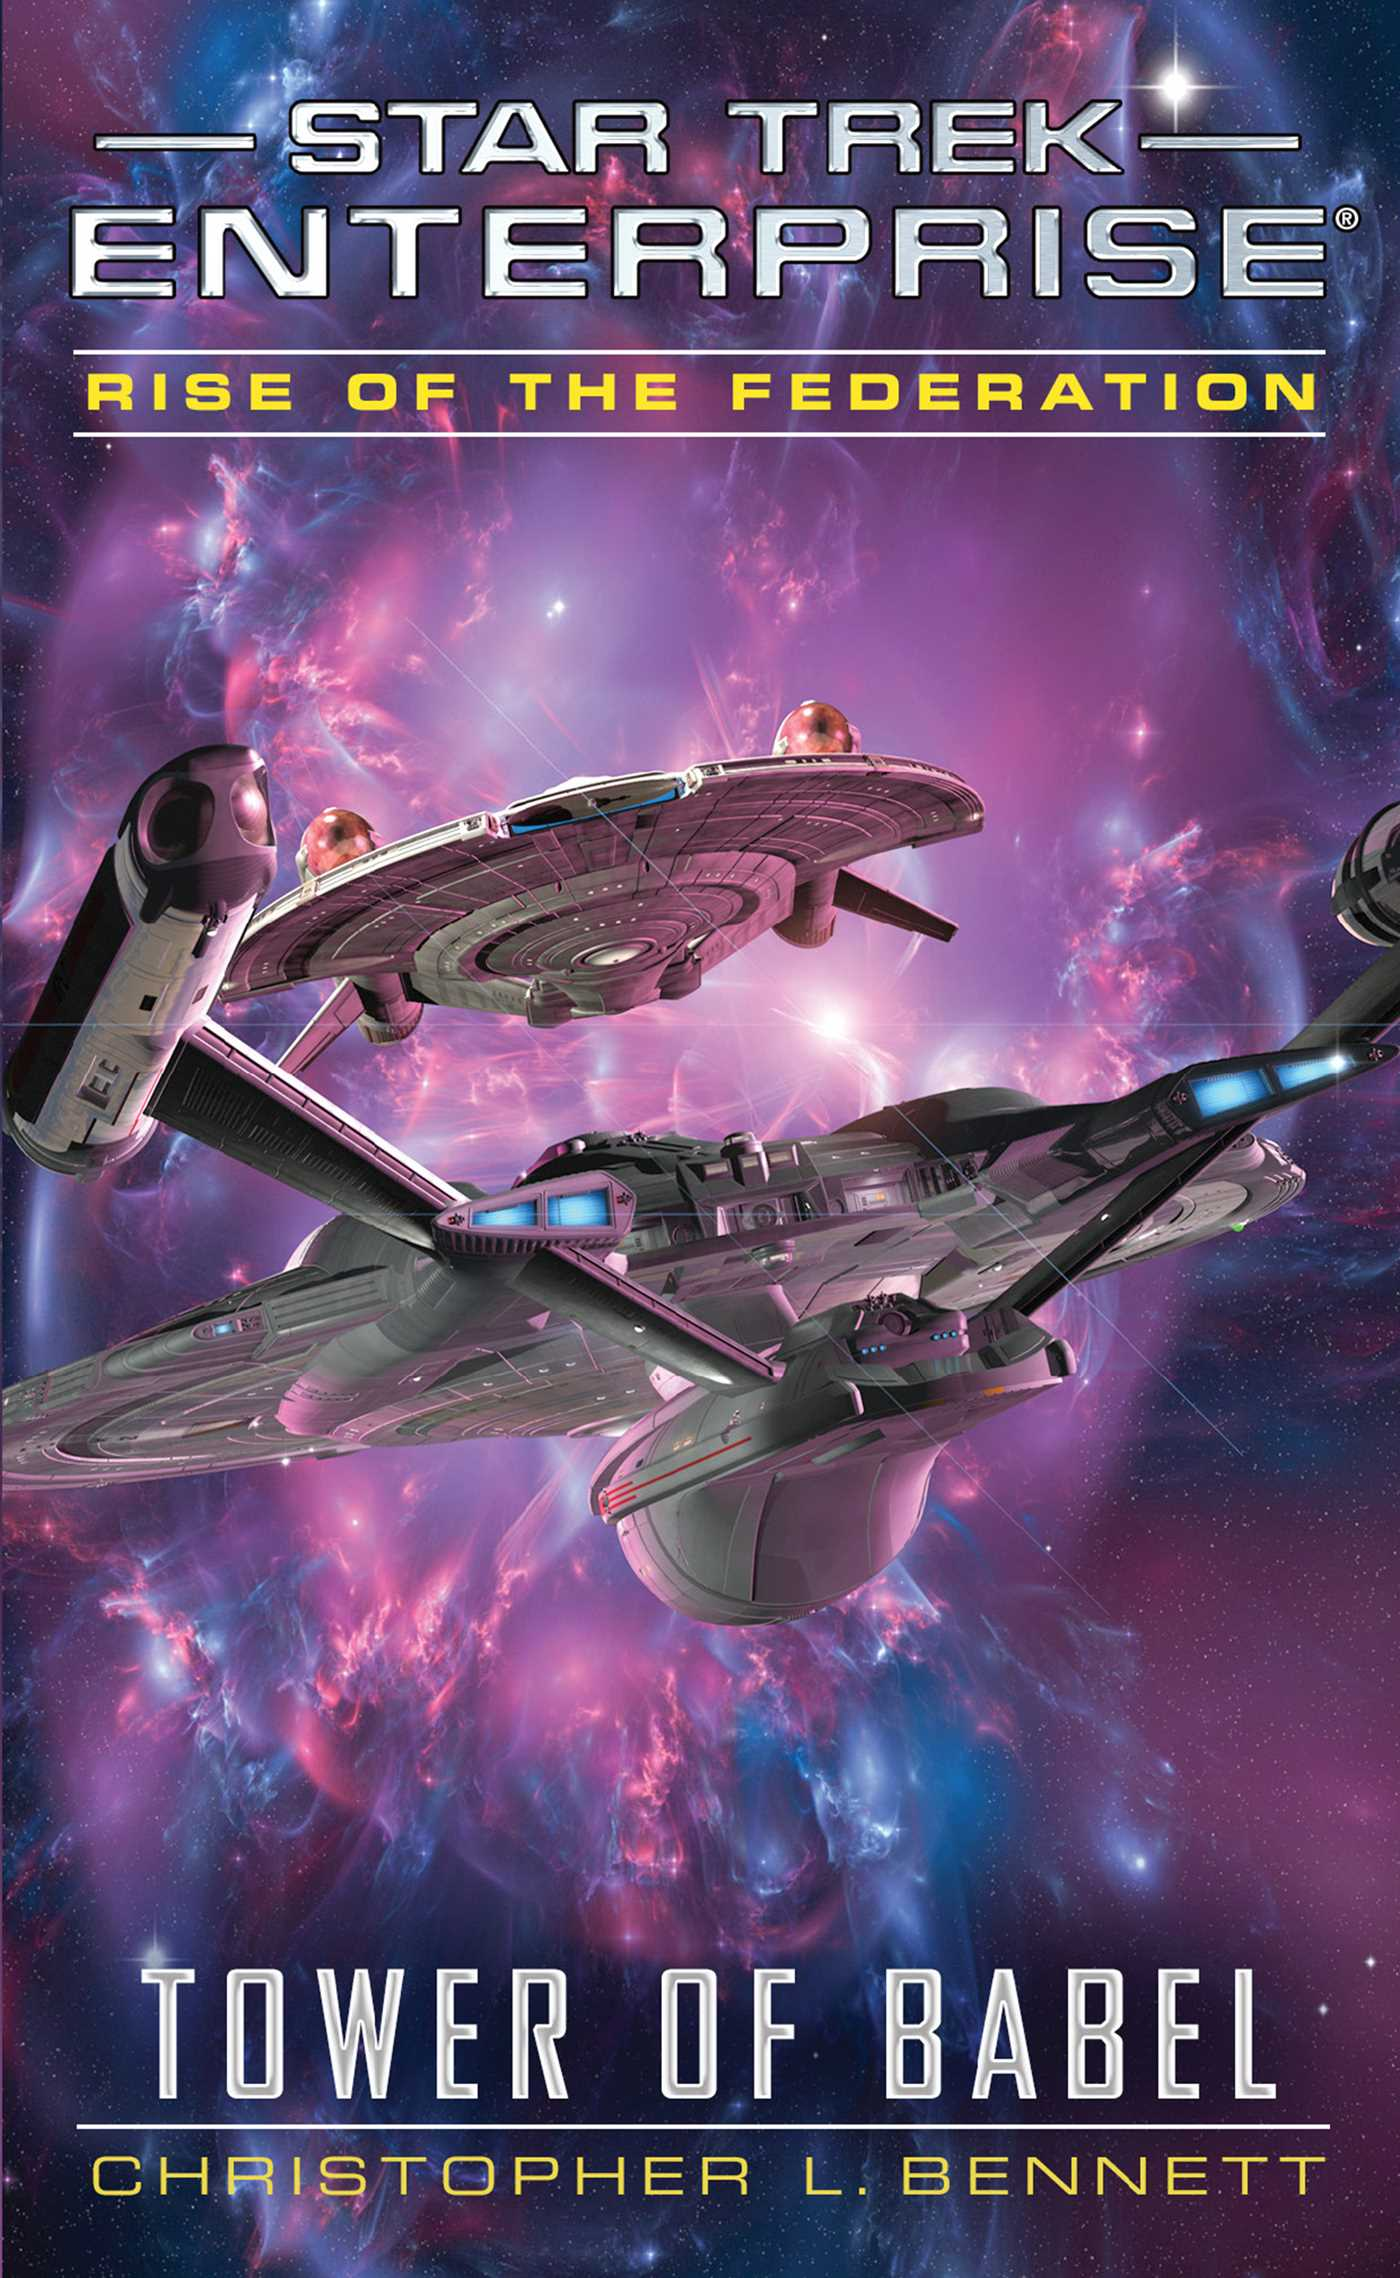 Star trek enterprise rise of the federation tower of babel 9781476749662 hr